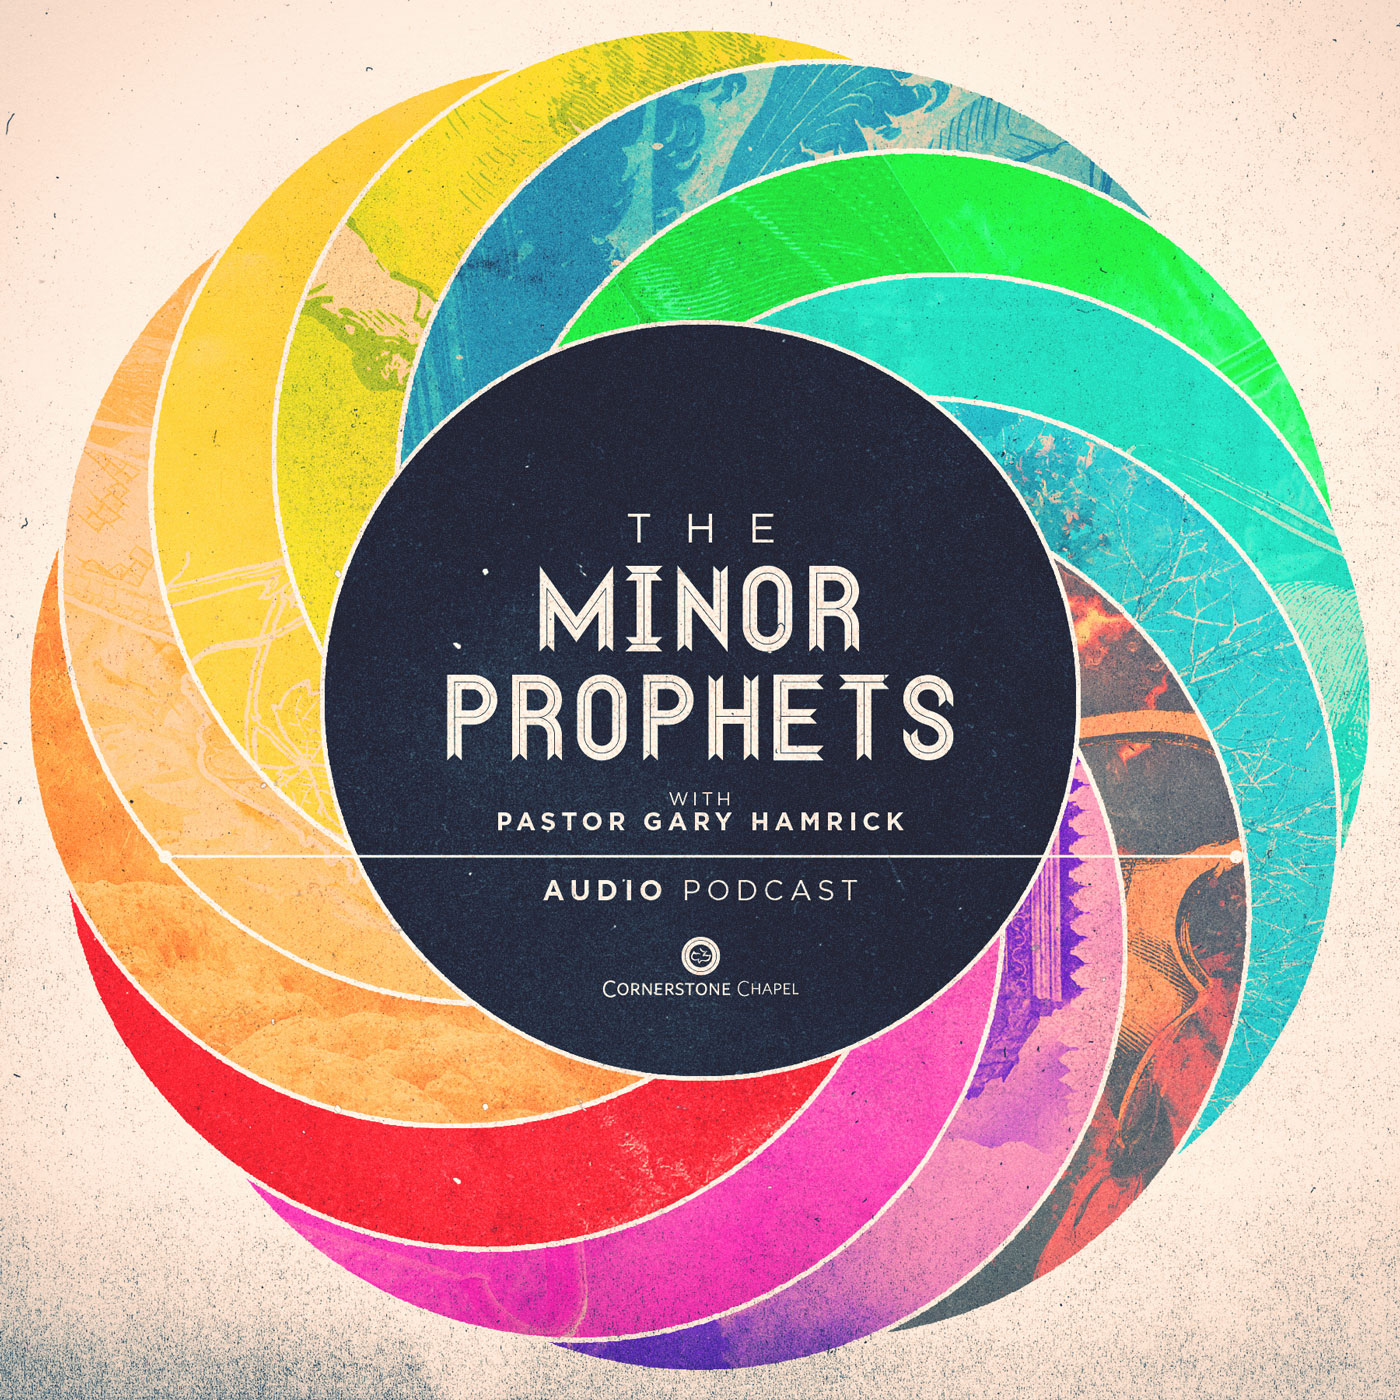 Cornerstone Chapel - The Minor Prophets (Audio)